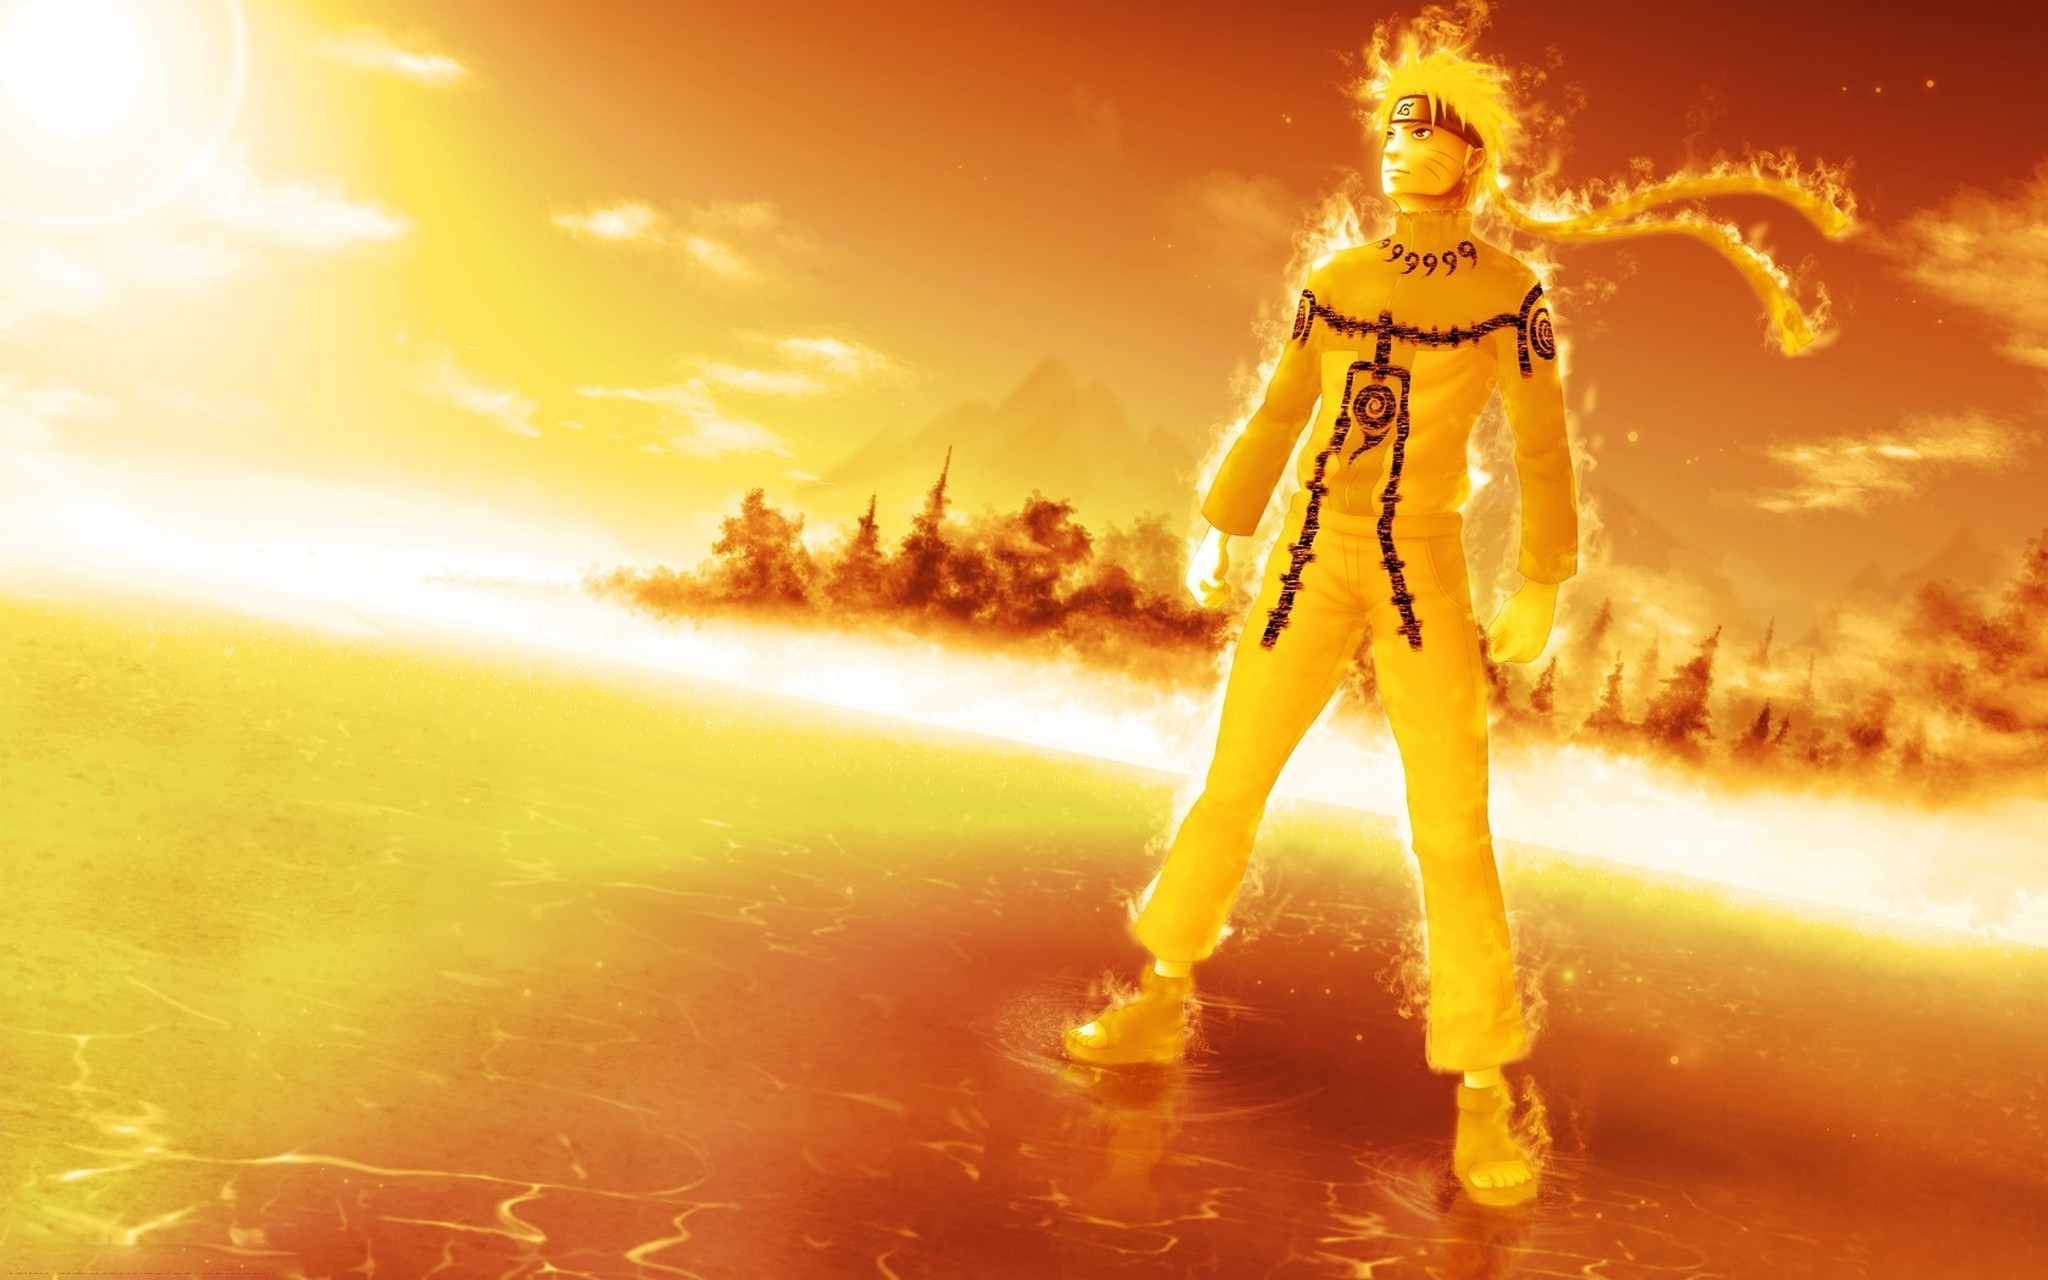 Popular Naruto images for mobile phone